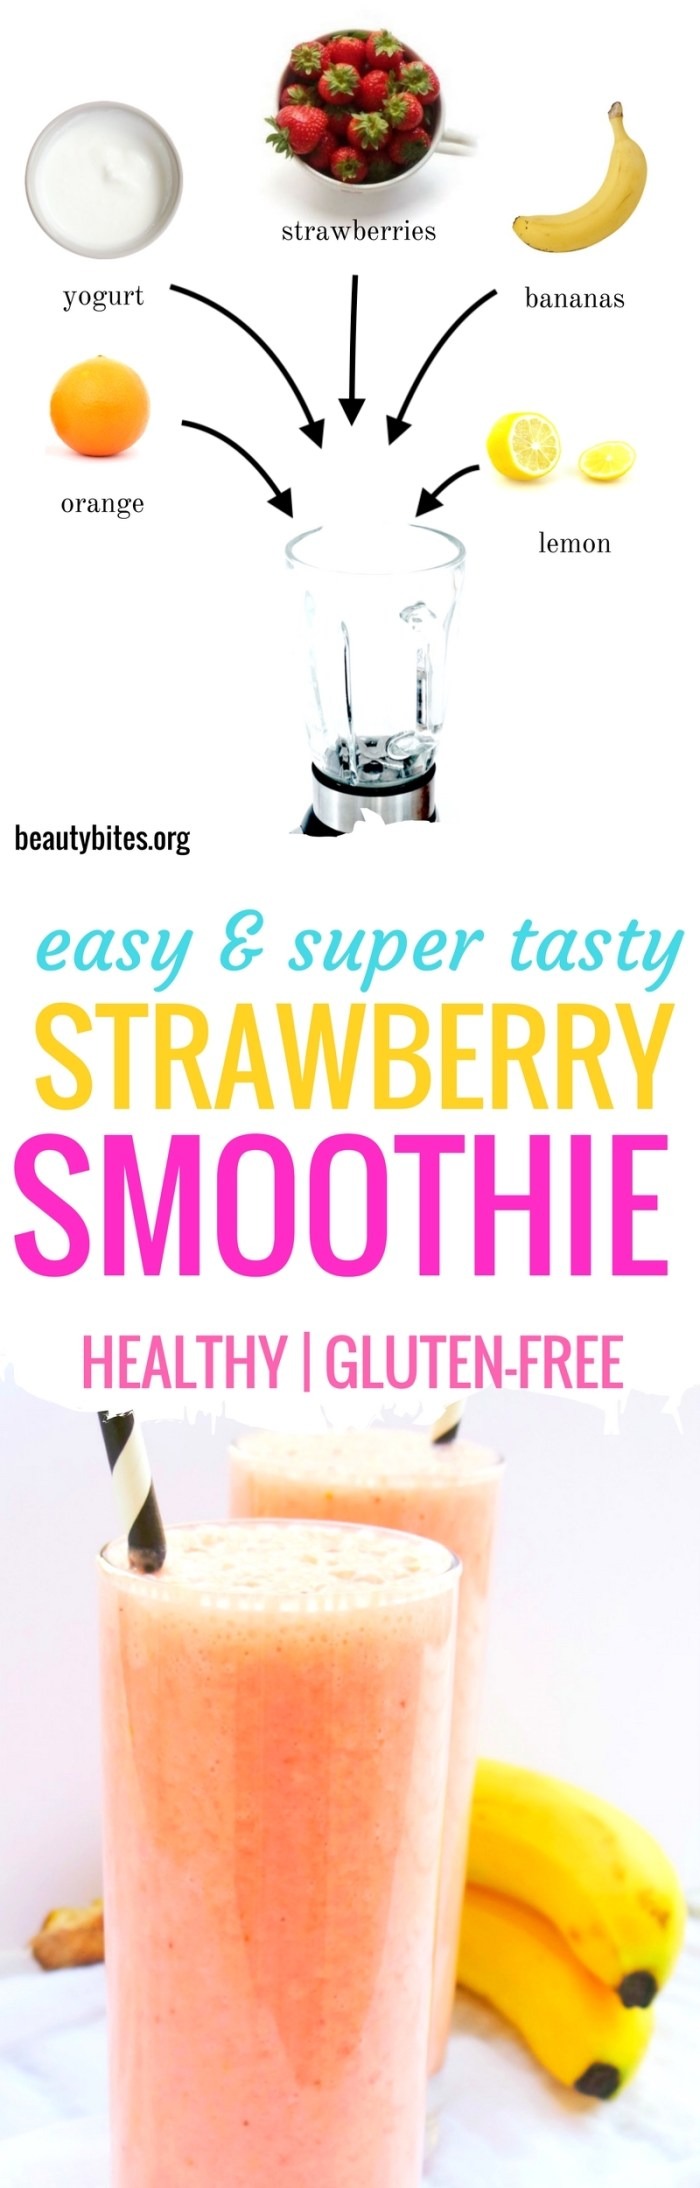 Easy and healthy strawberry smoothie! Make this healthy snack in less than 5 minutes, so tasty and so easy and it tastes like a strawberry colada (without the alcohol)! | beautybites.org | easy healthy smoothie #healthysmoothie